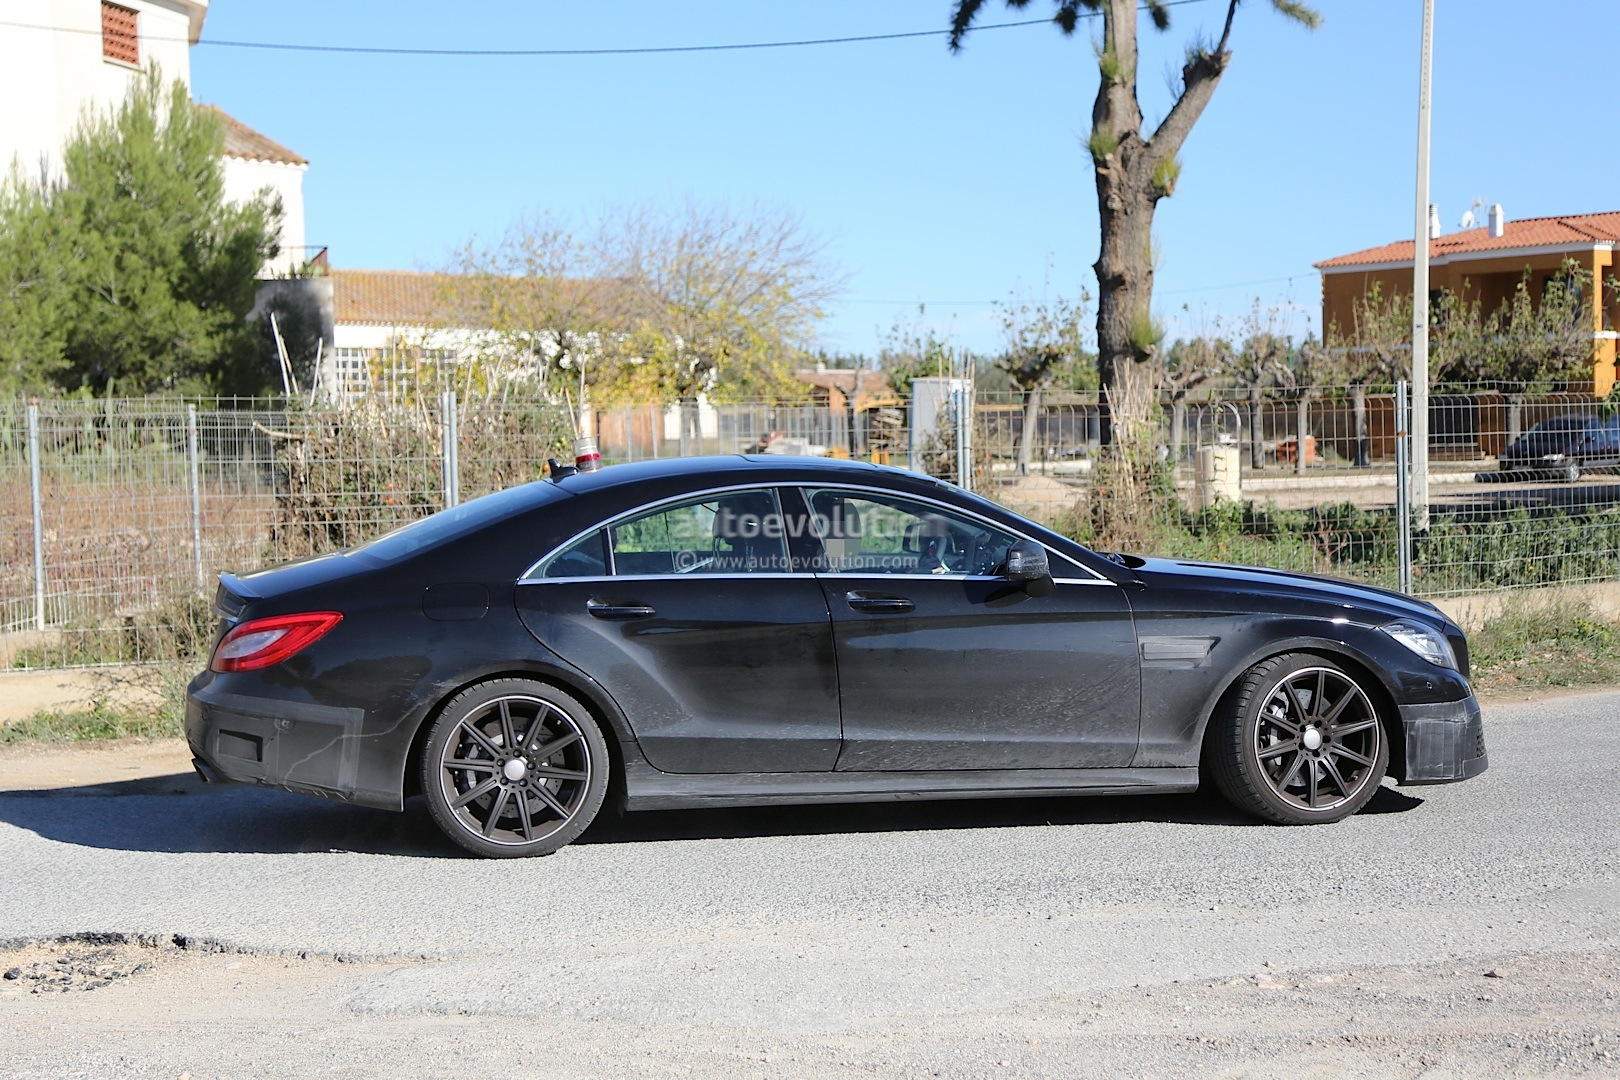 2015 Mercedes-Benz CLS 63 AMG Shooting Brake S-Model - Front | HD ...